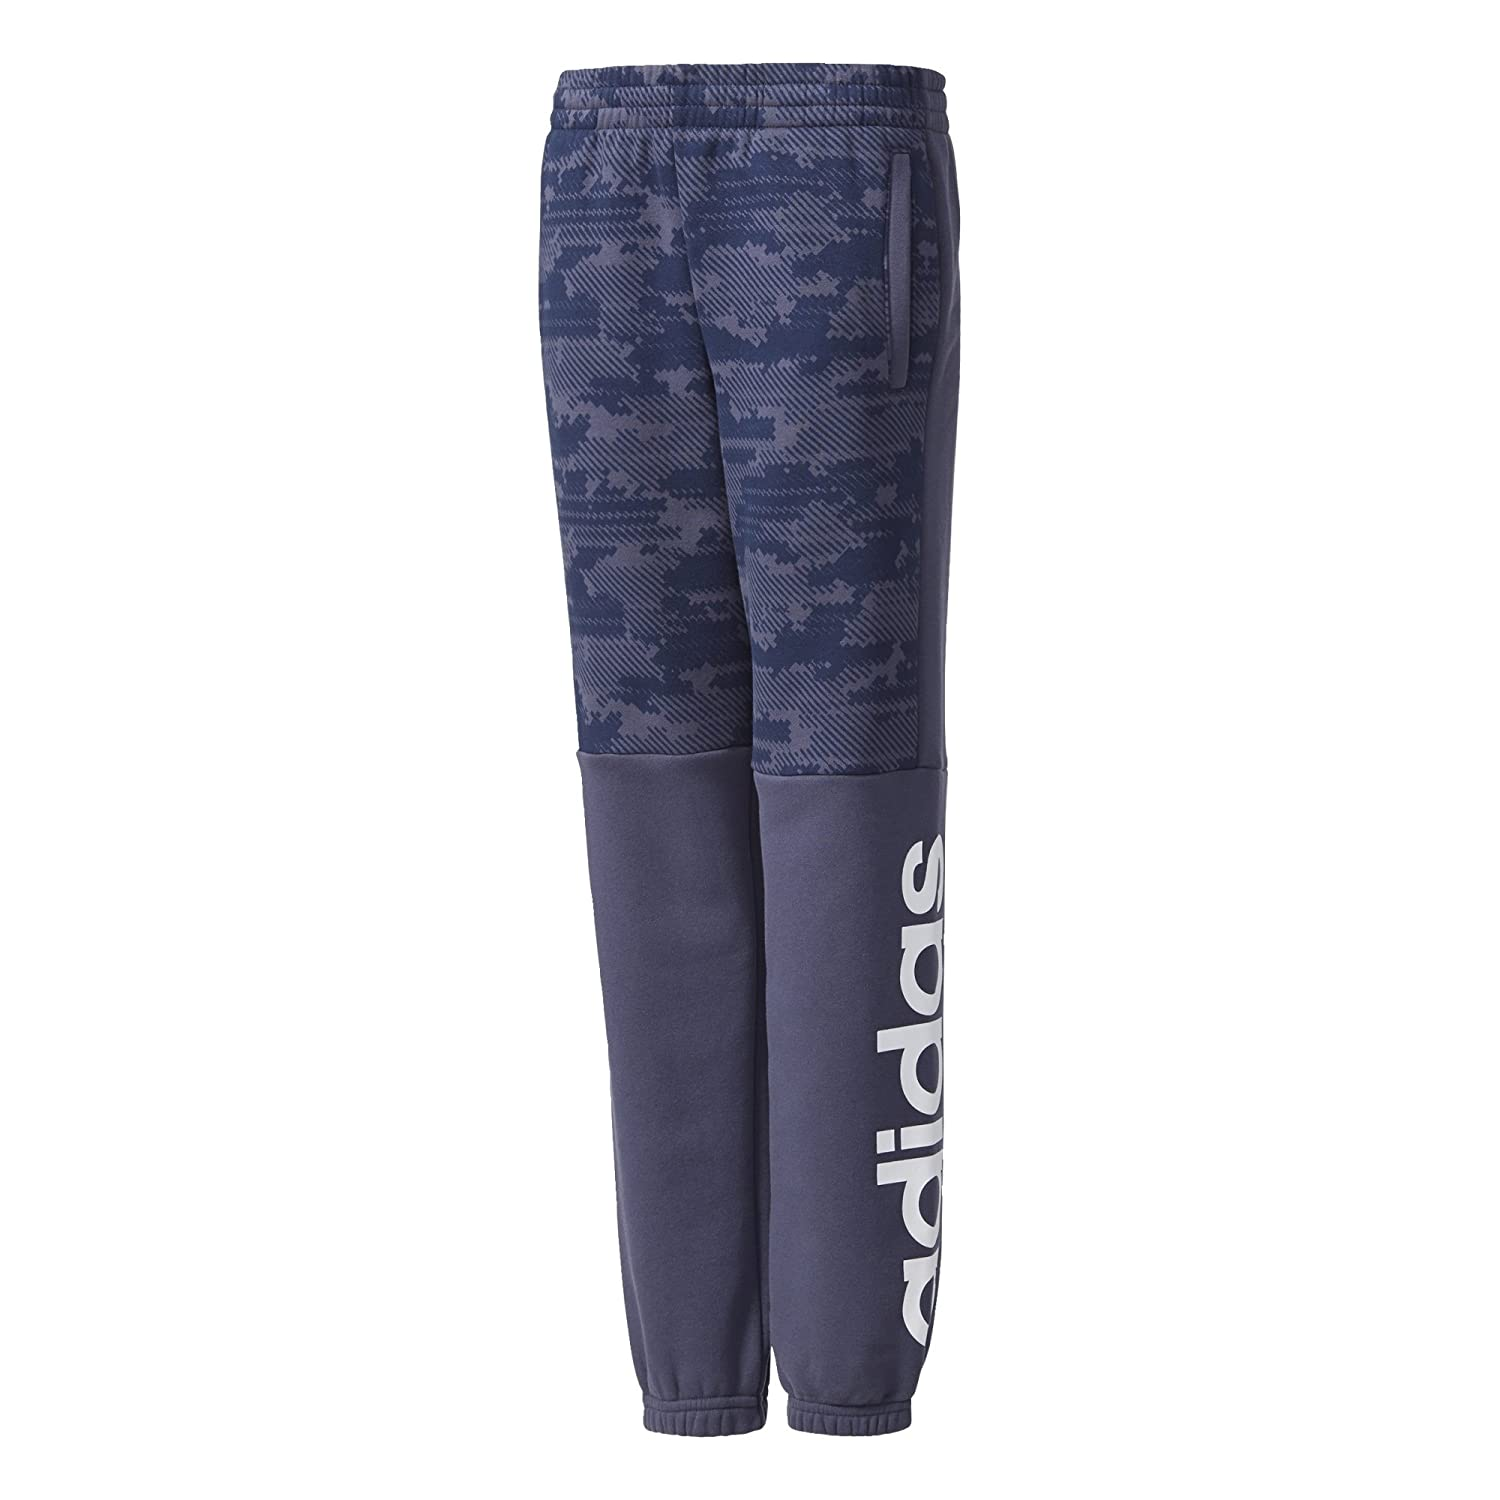 adidas Yb Lin, Boys Trousers CE8849